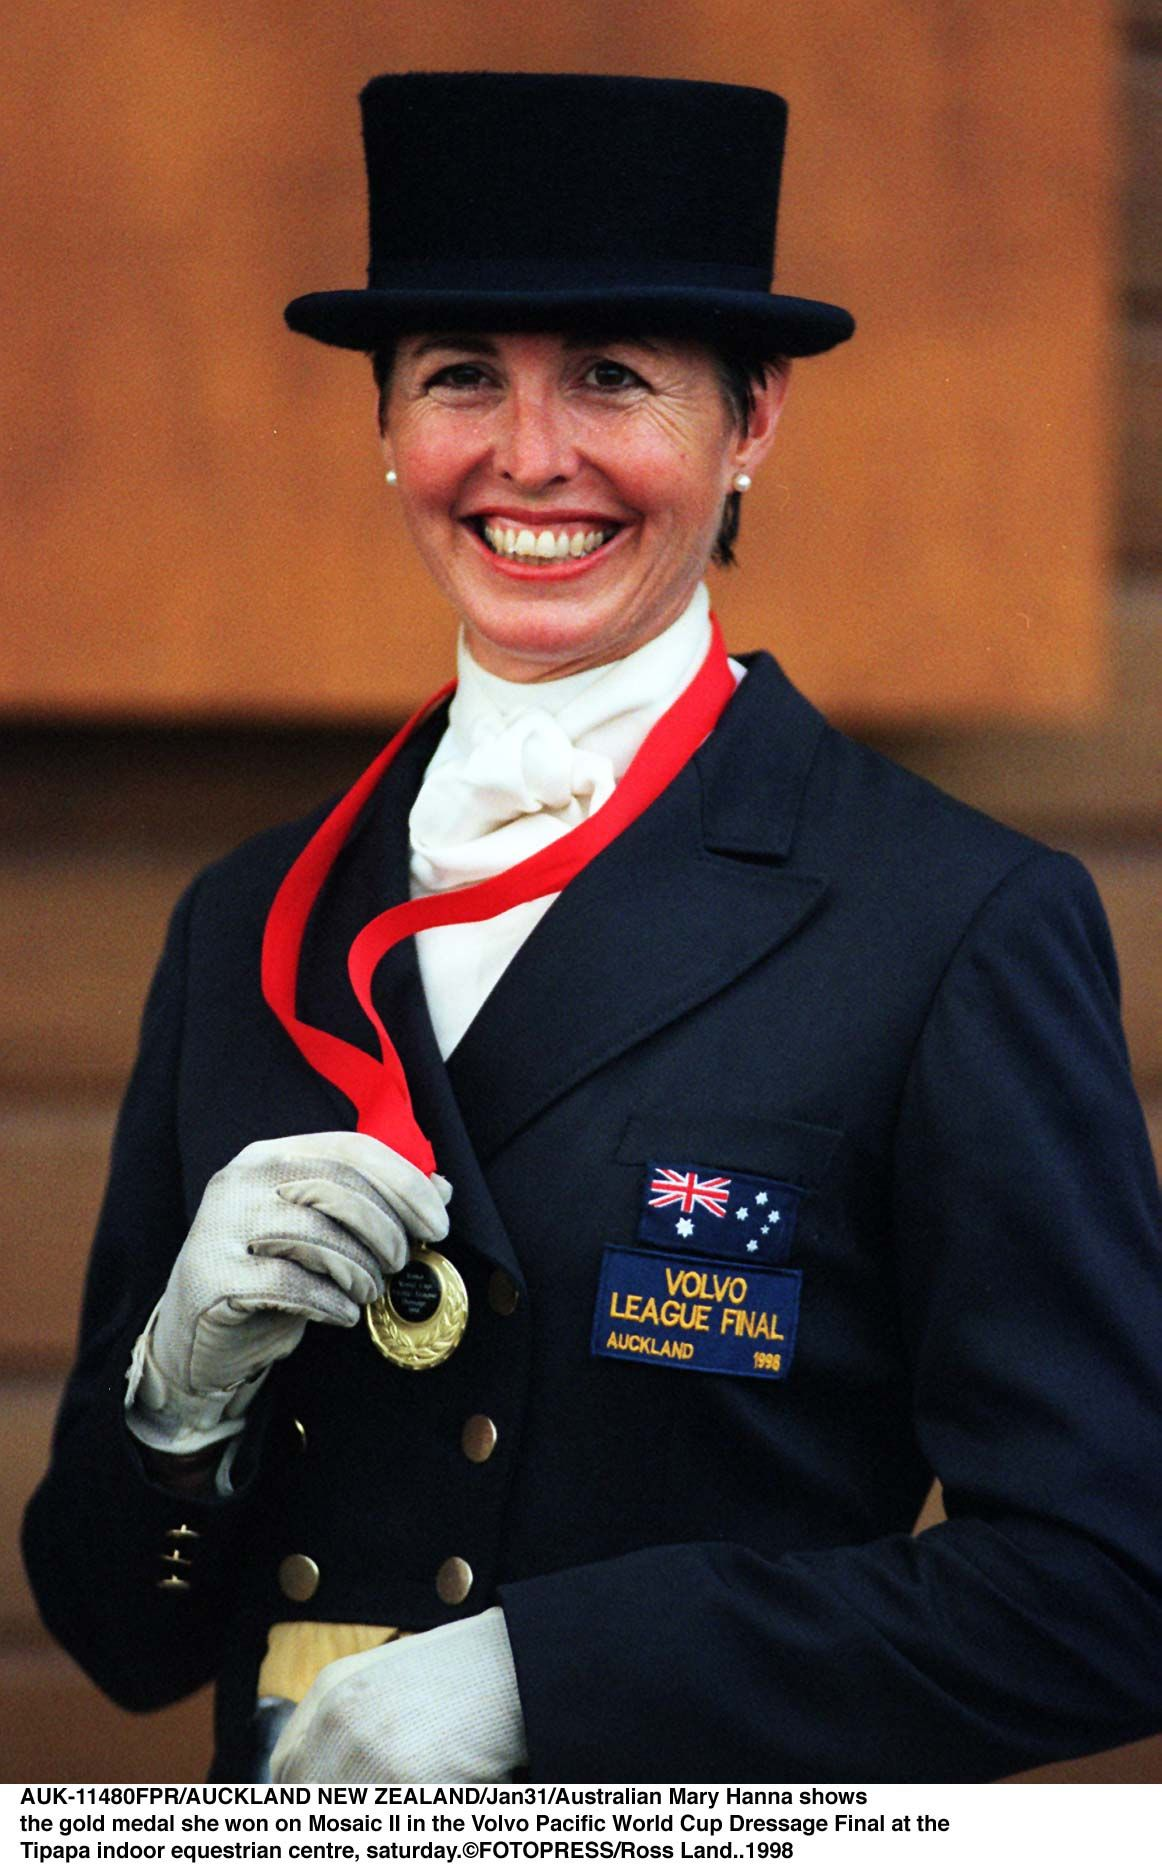 AUCKLAND, NEW ZEALAND - JANUARY 31:  Australian Mary Hanna shows rthe gold medal she won on Mosaic II in the Volvo Pacific World Cup Dressage Final at the rTipapa indoor equestrian centre, saturday.  (Photo by Ross Land/Getty Images)